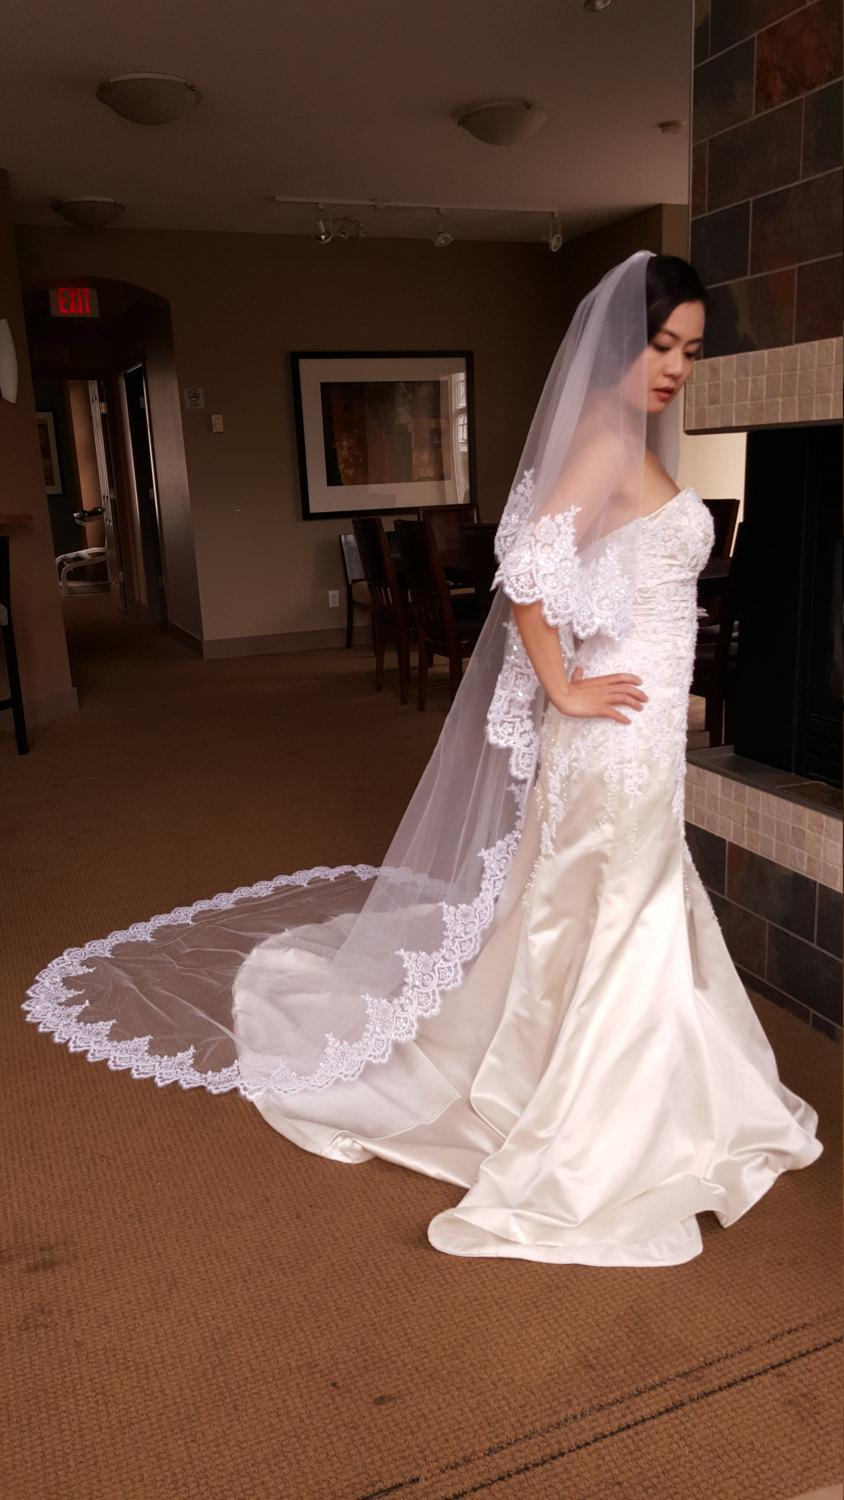 Hochzeit - Free Shipping Sale Ivory Bridal Cathedral Floor Length Veil Wedding Luxury Lace Eyelash Edge Sequins 2 Tier 2.7M With Comb Ready To Ship